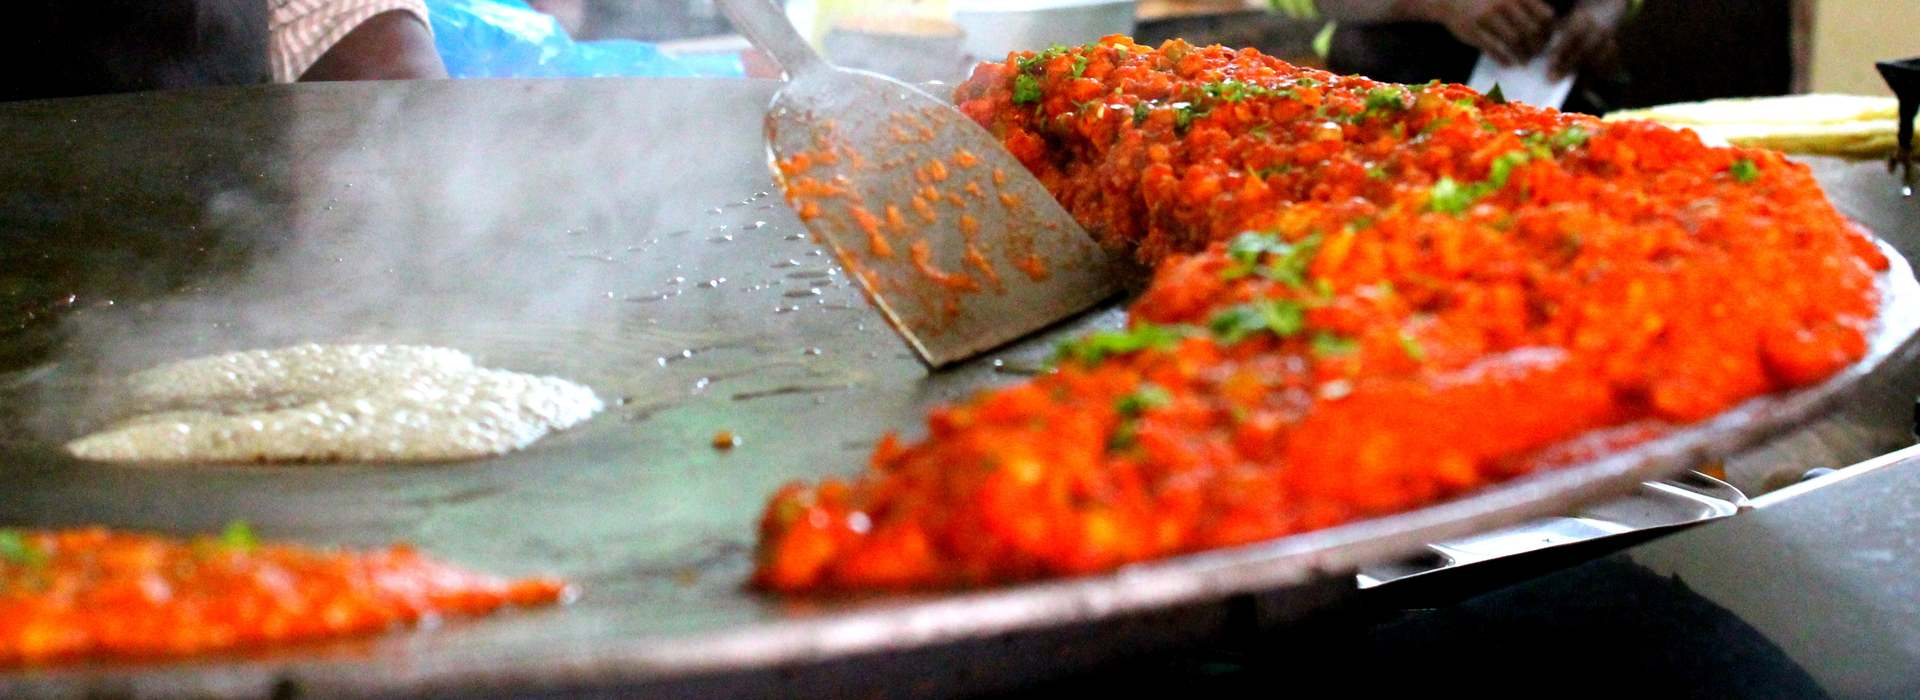 video screenshot for Discover what Mumbai cuisine is all about